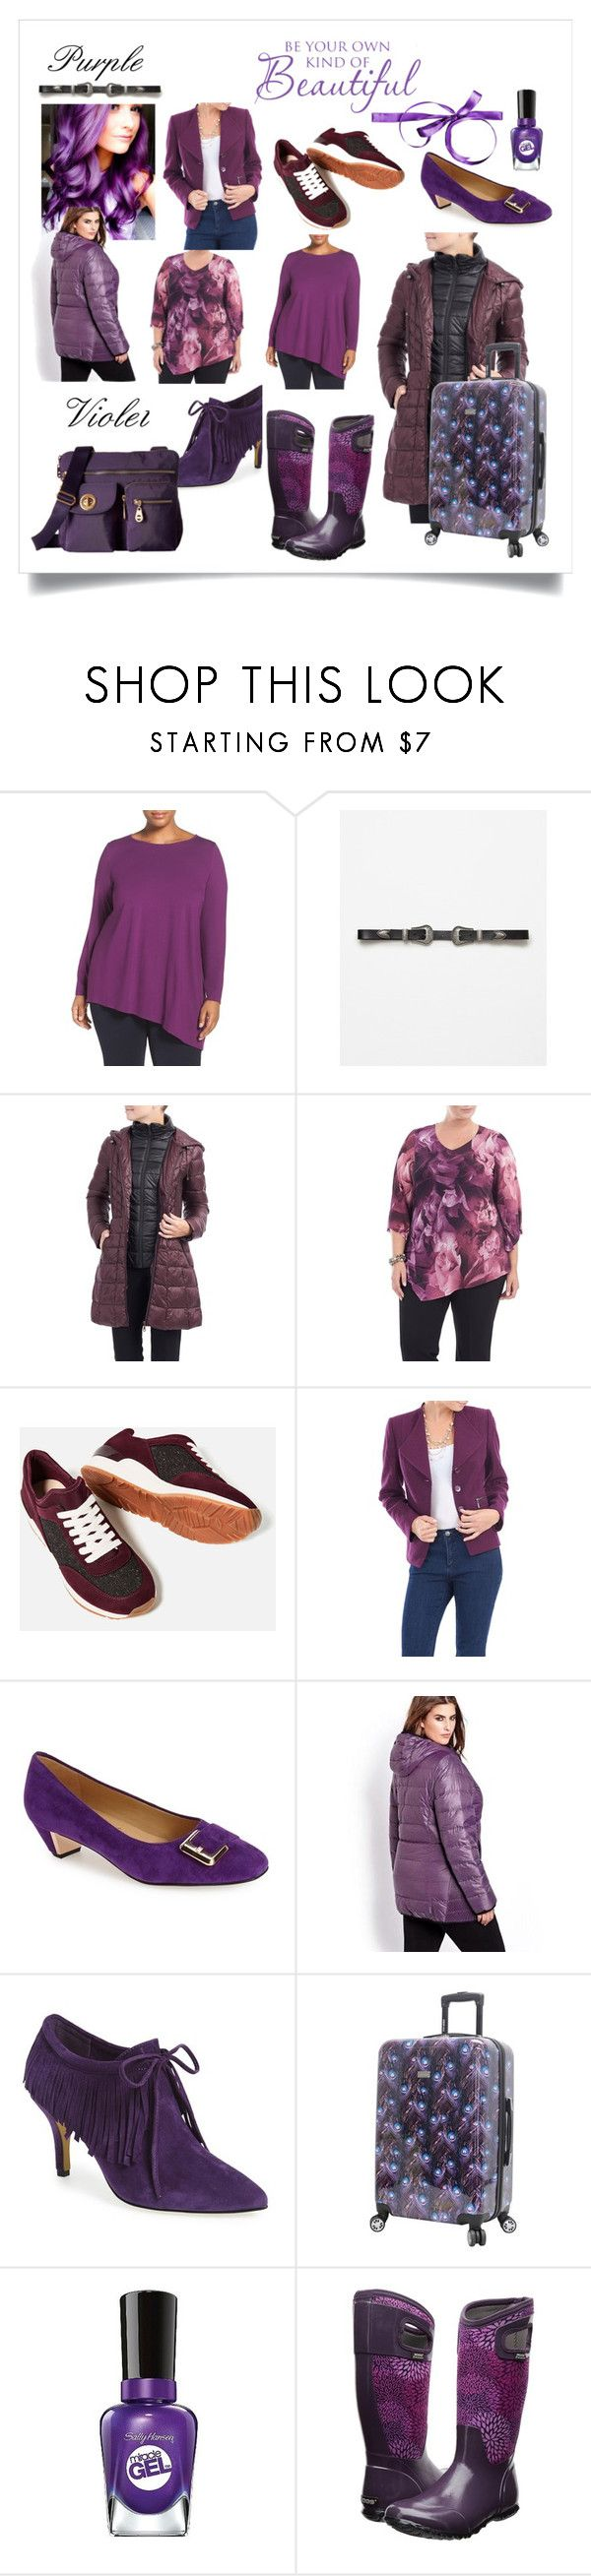 """""""Violet - Purple - Mauve"""" by ladeesse on Polyvore featuring mode, Eileen Fisher, Piel Leather, Laura B, Trotters, Addition Elle, Bella Vita, Sally Hansen, Bogs et Baggallini"""